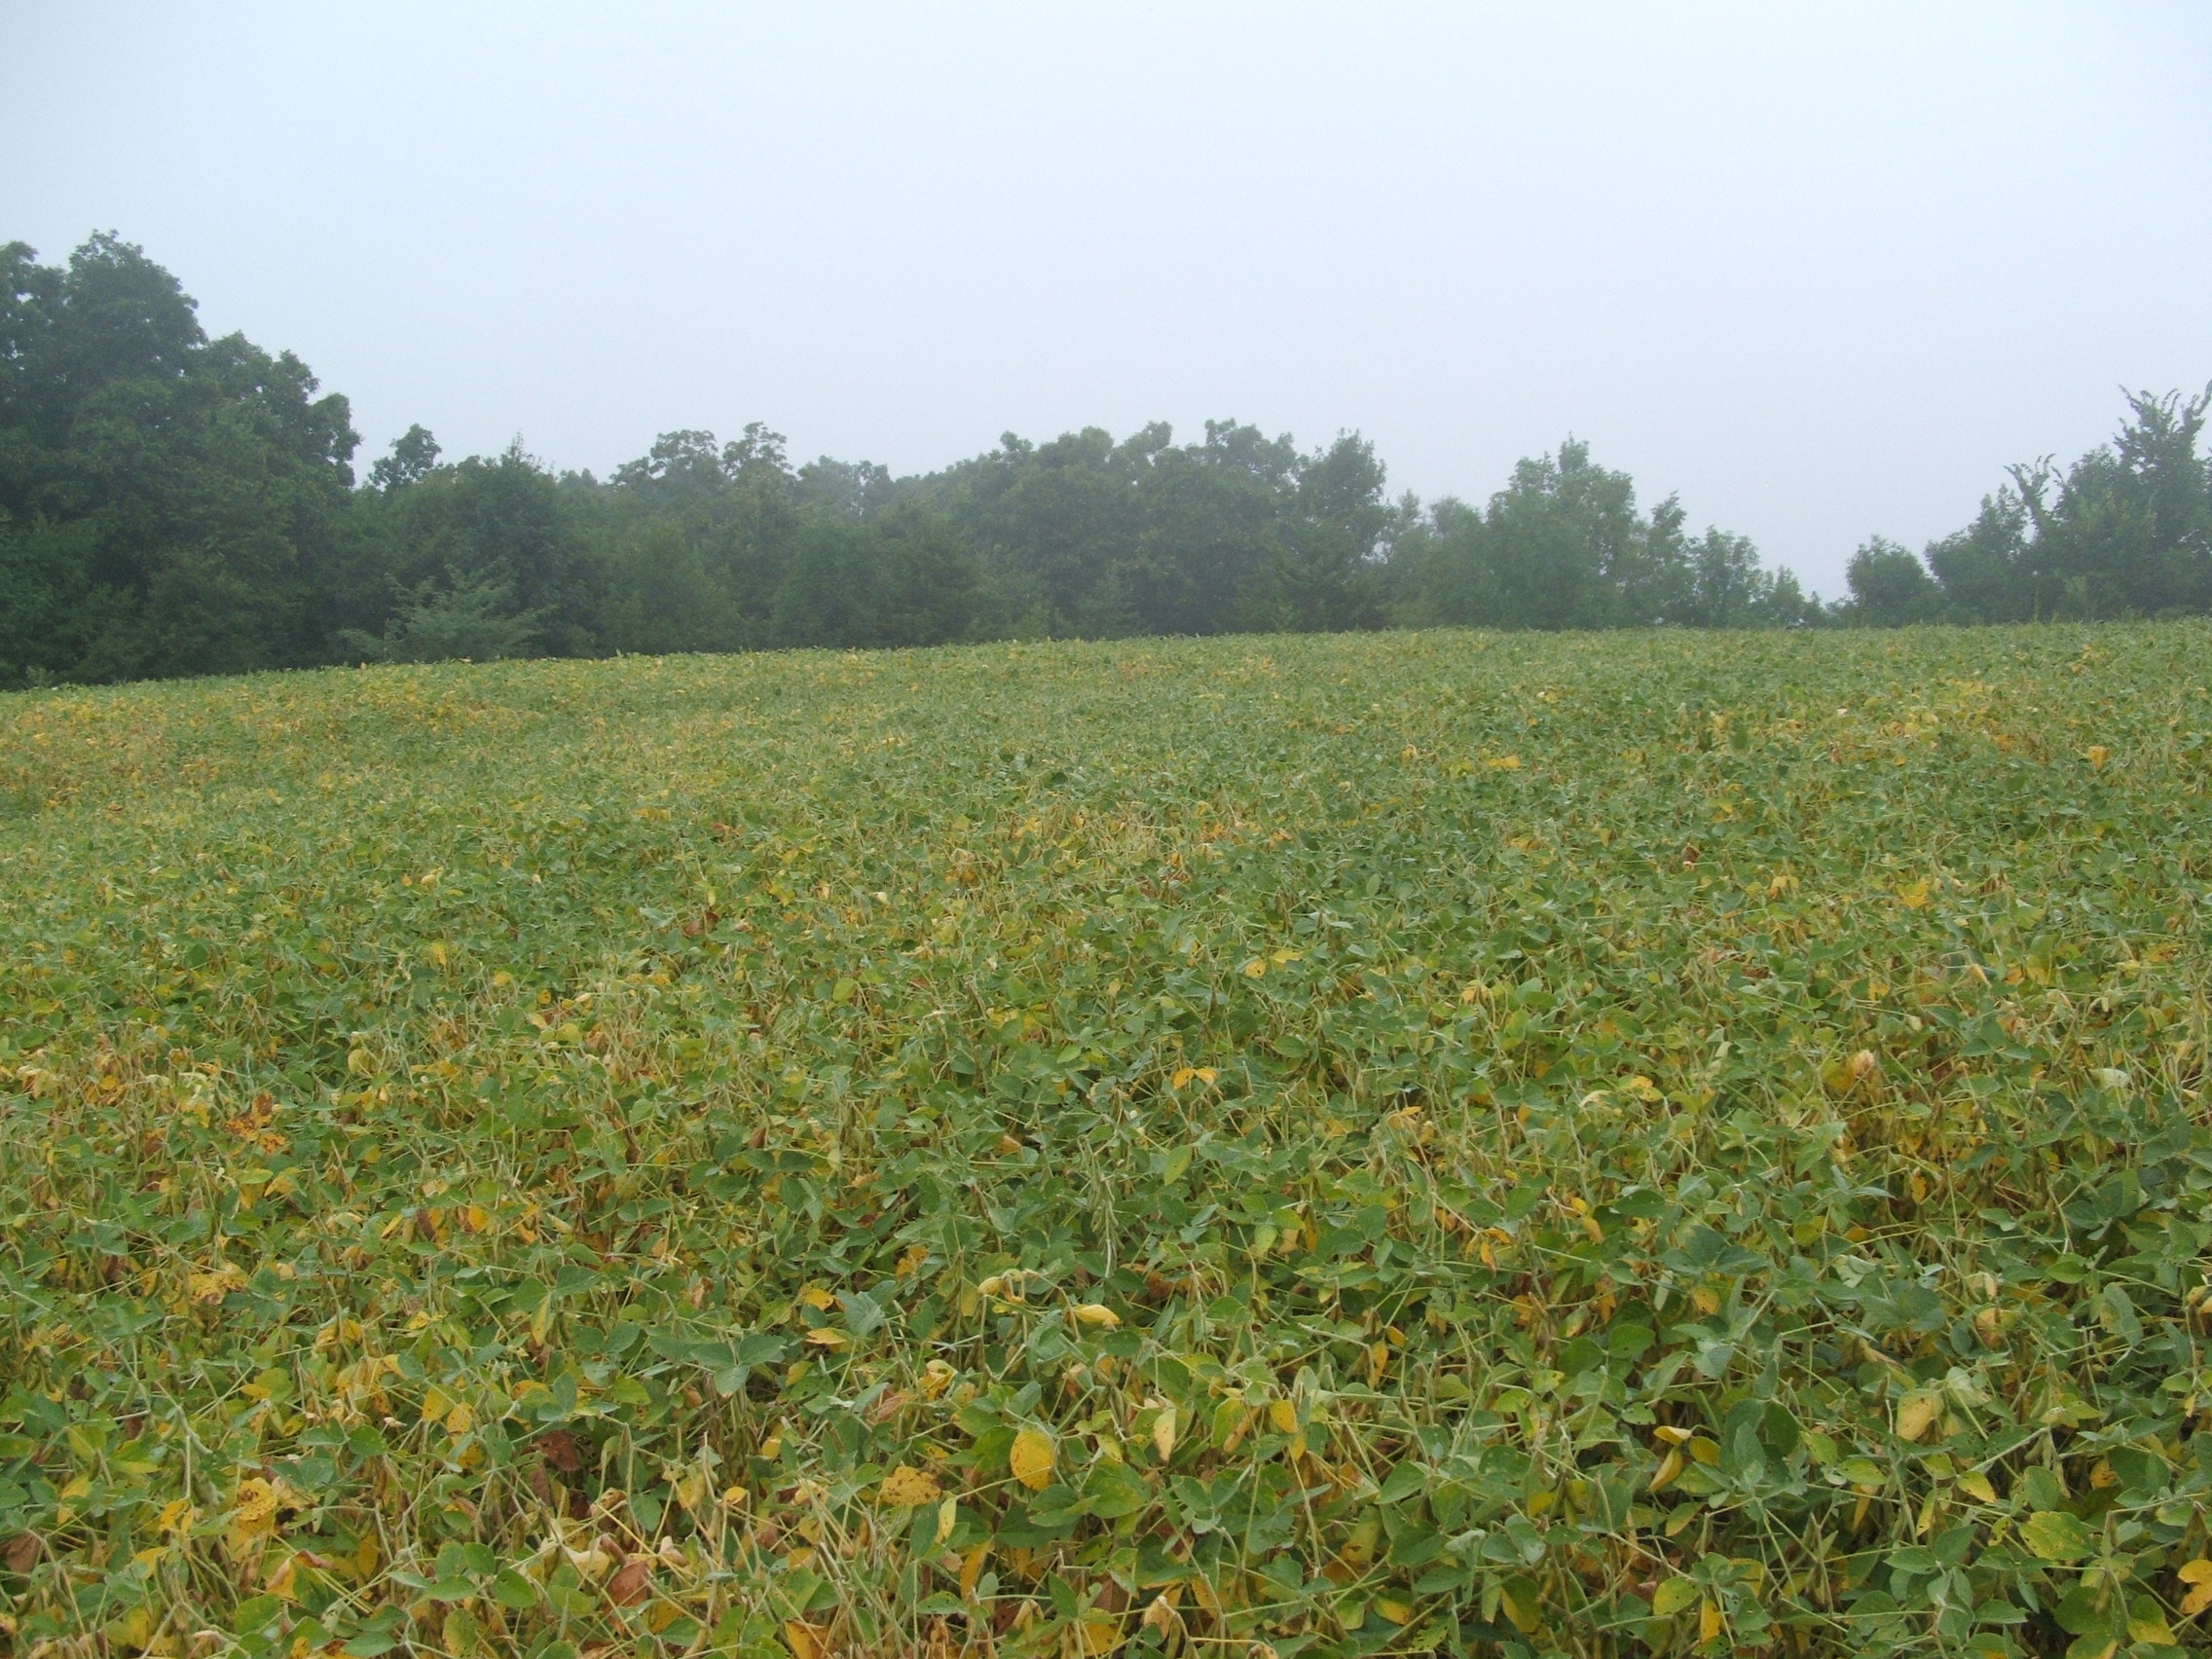 Toward the end of the growing season, soybeans will turn yellow as the beans start to ripen.  If there are other green sources of food available like clover or alfalfa, deer may leave the beans entirely only to return in a few weeks once they dry down.